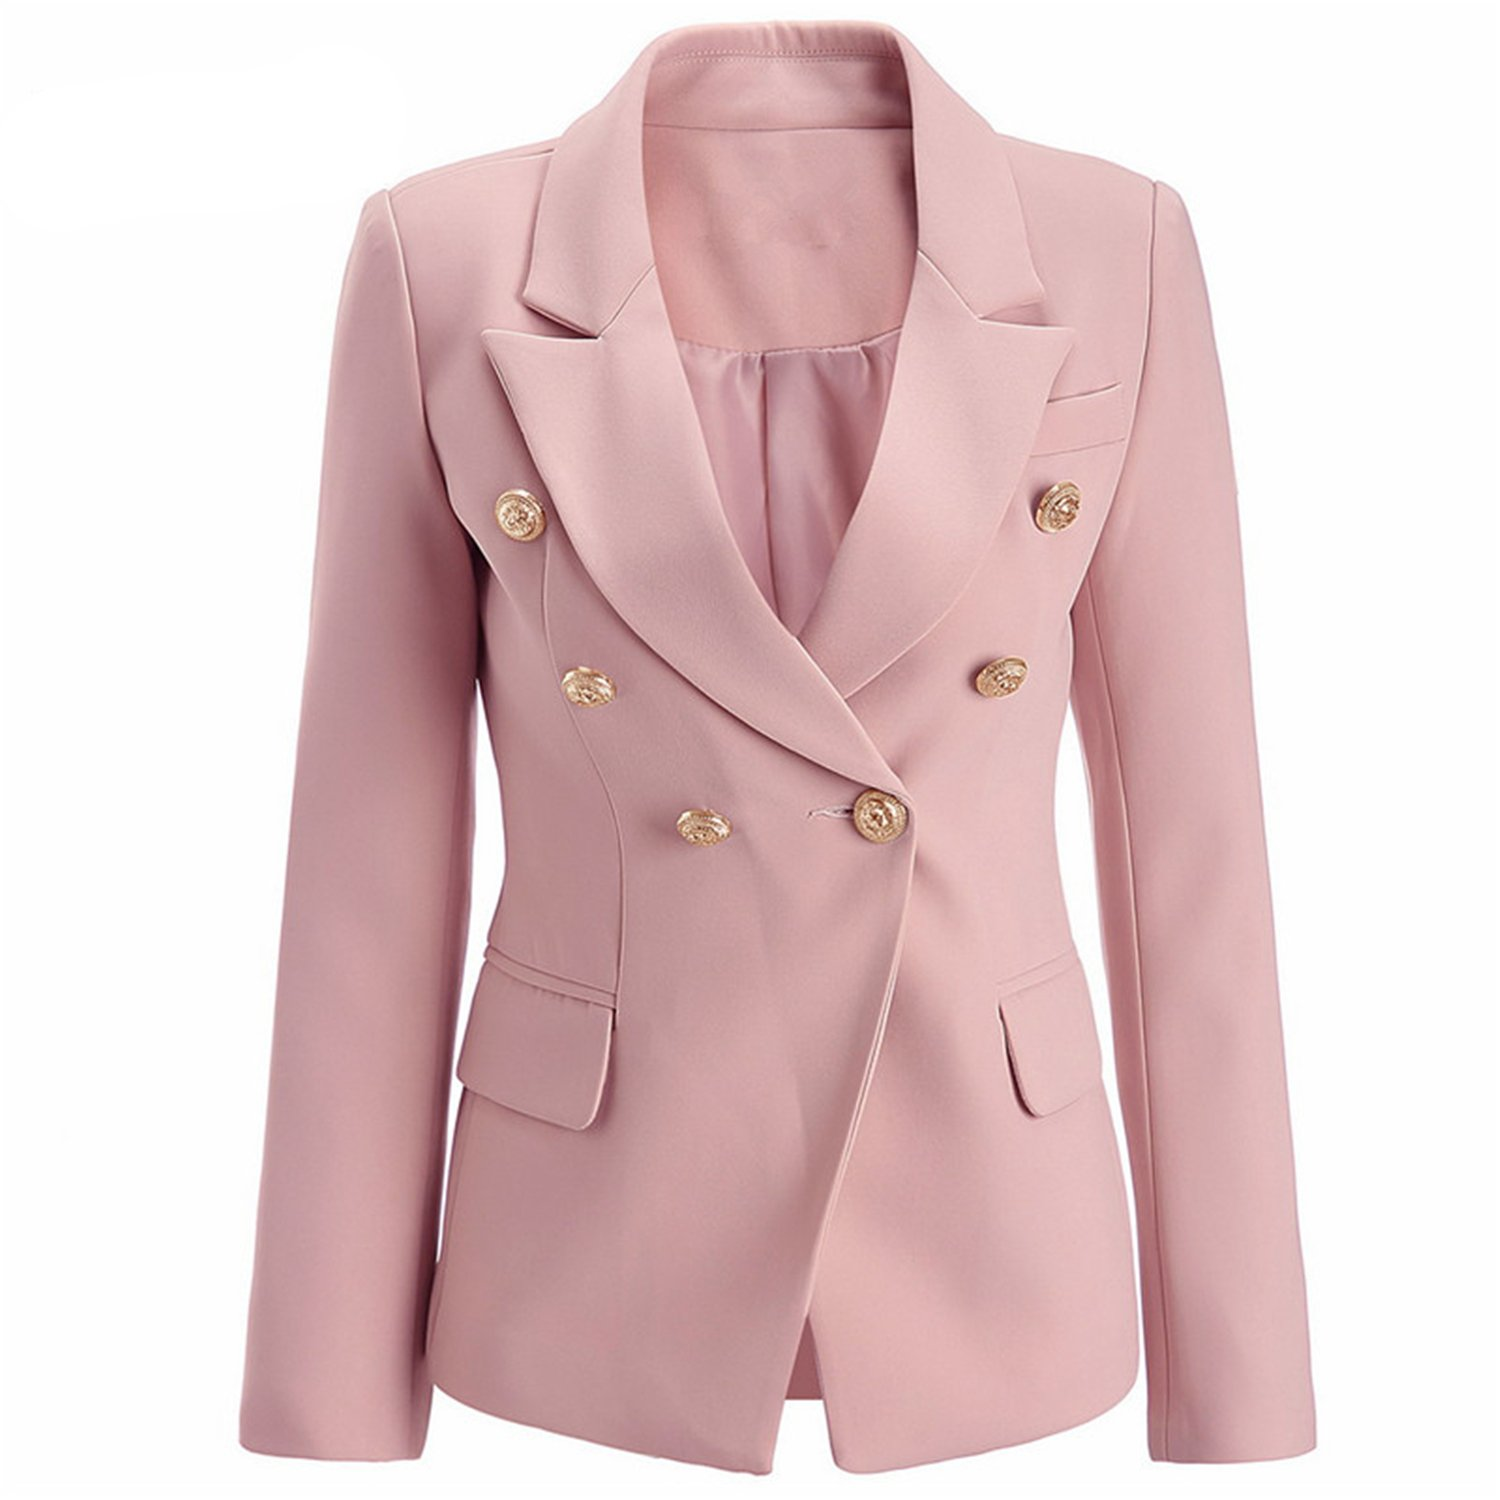 c893d1b26143 Saneoo Pale Pink Blazer Wear to Work Office Lady Tops Clothing Fall Women  New Button Design Blasers Spring Fashion Coat at Amazon Women's Clothing  store: